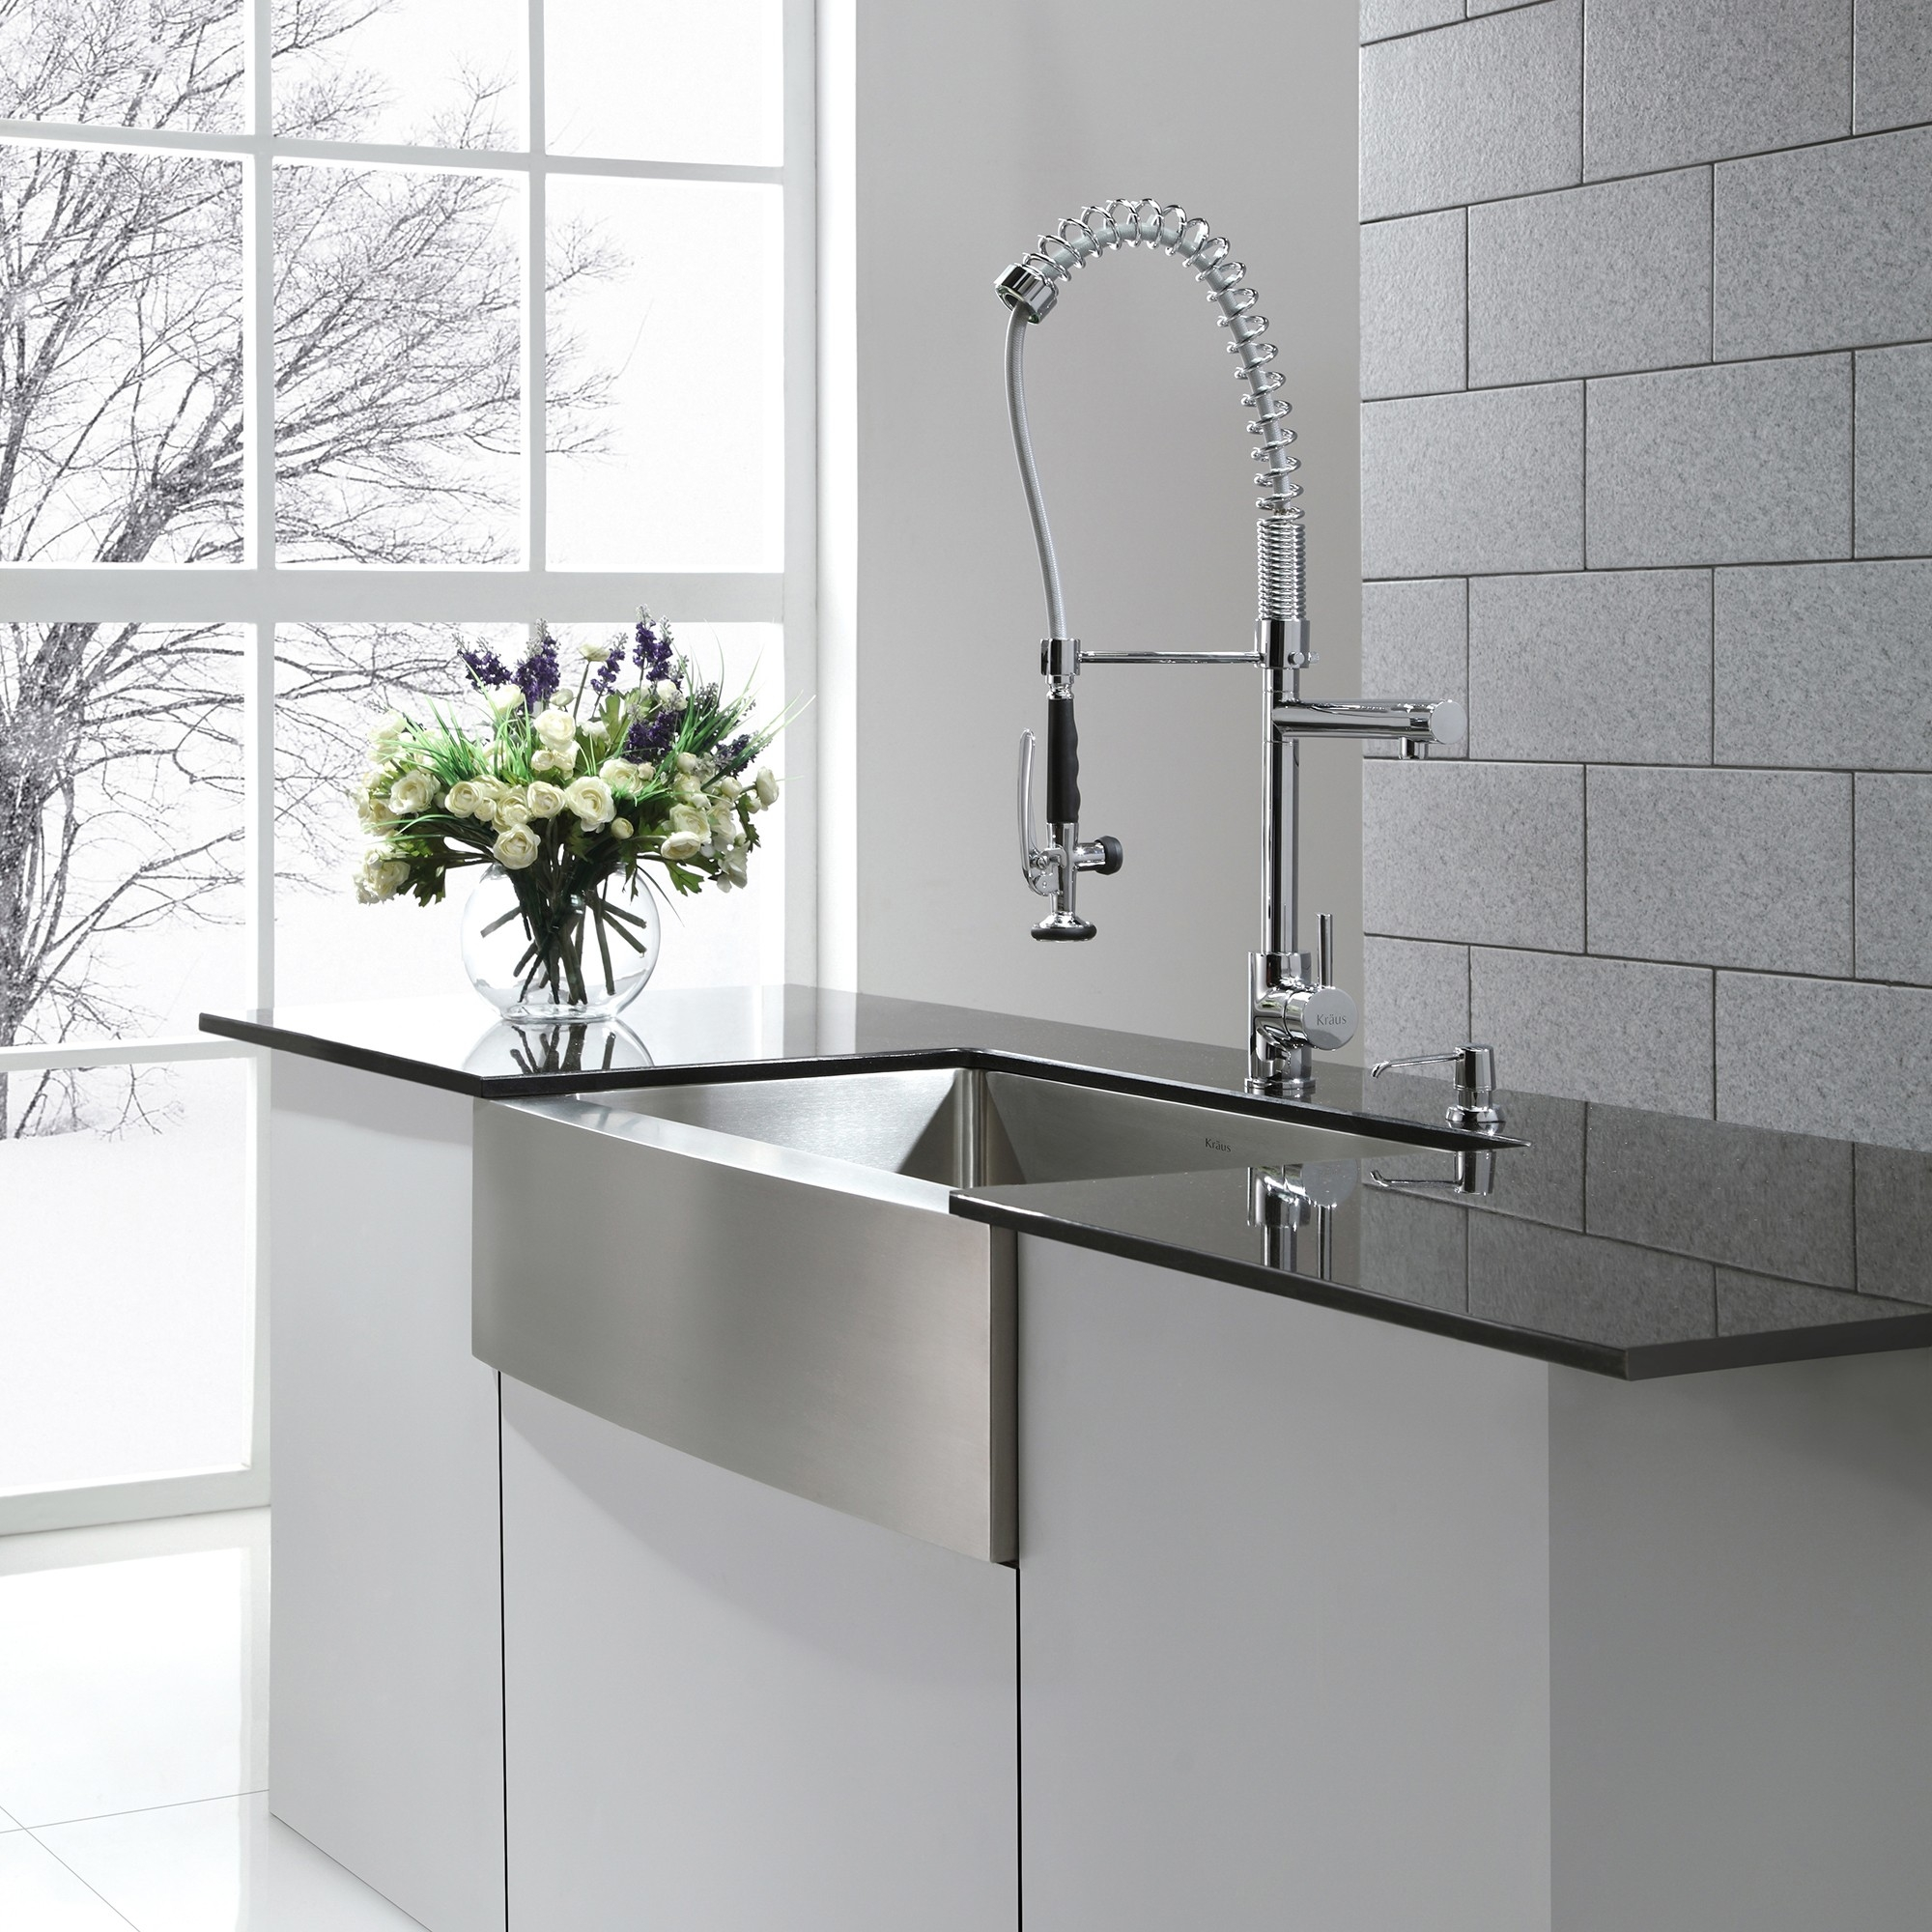 stainless steel farmhouse sink with faucet holes stainless steel farmhouse sink with faucet holes stainless steel kitchen sink combination kraususa 2000 x 2000